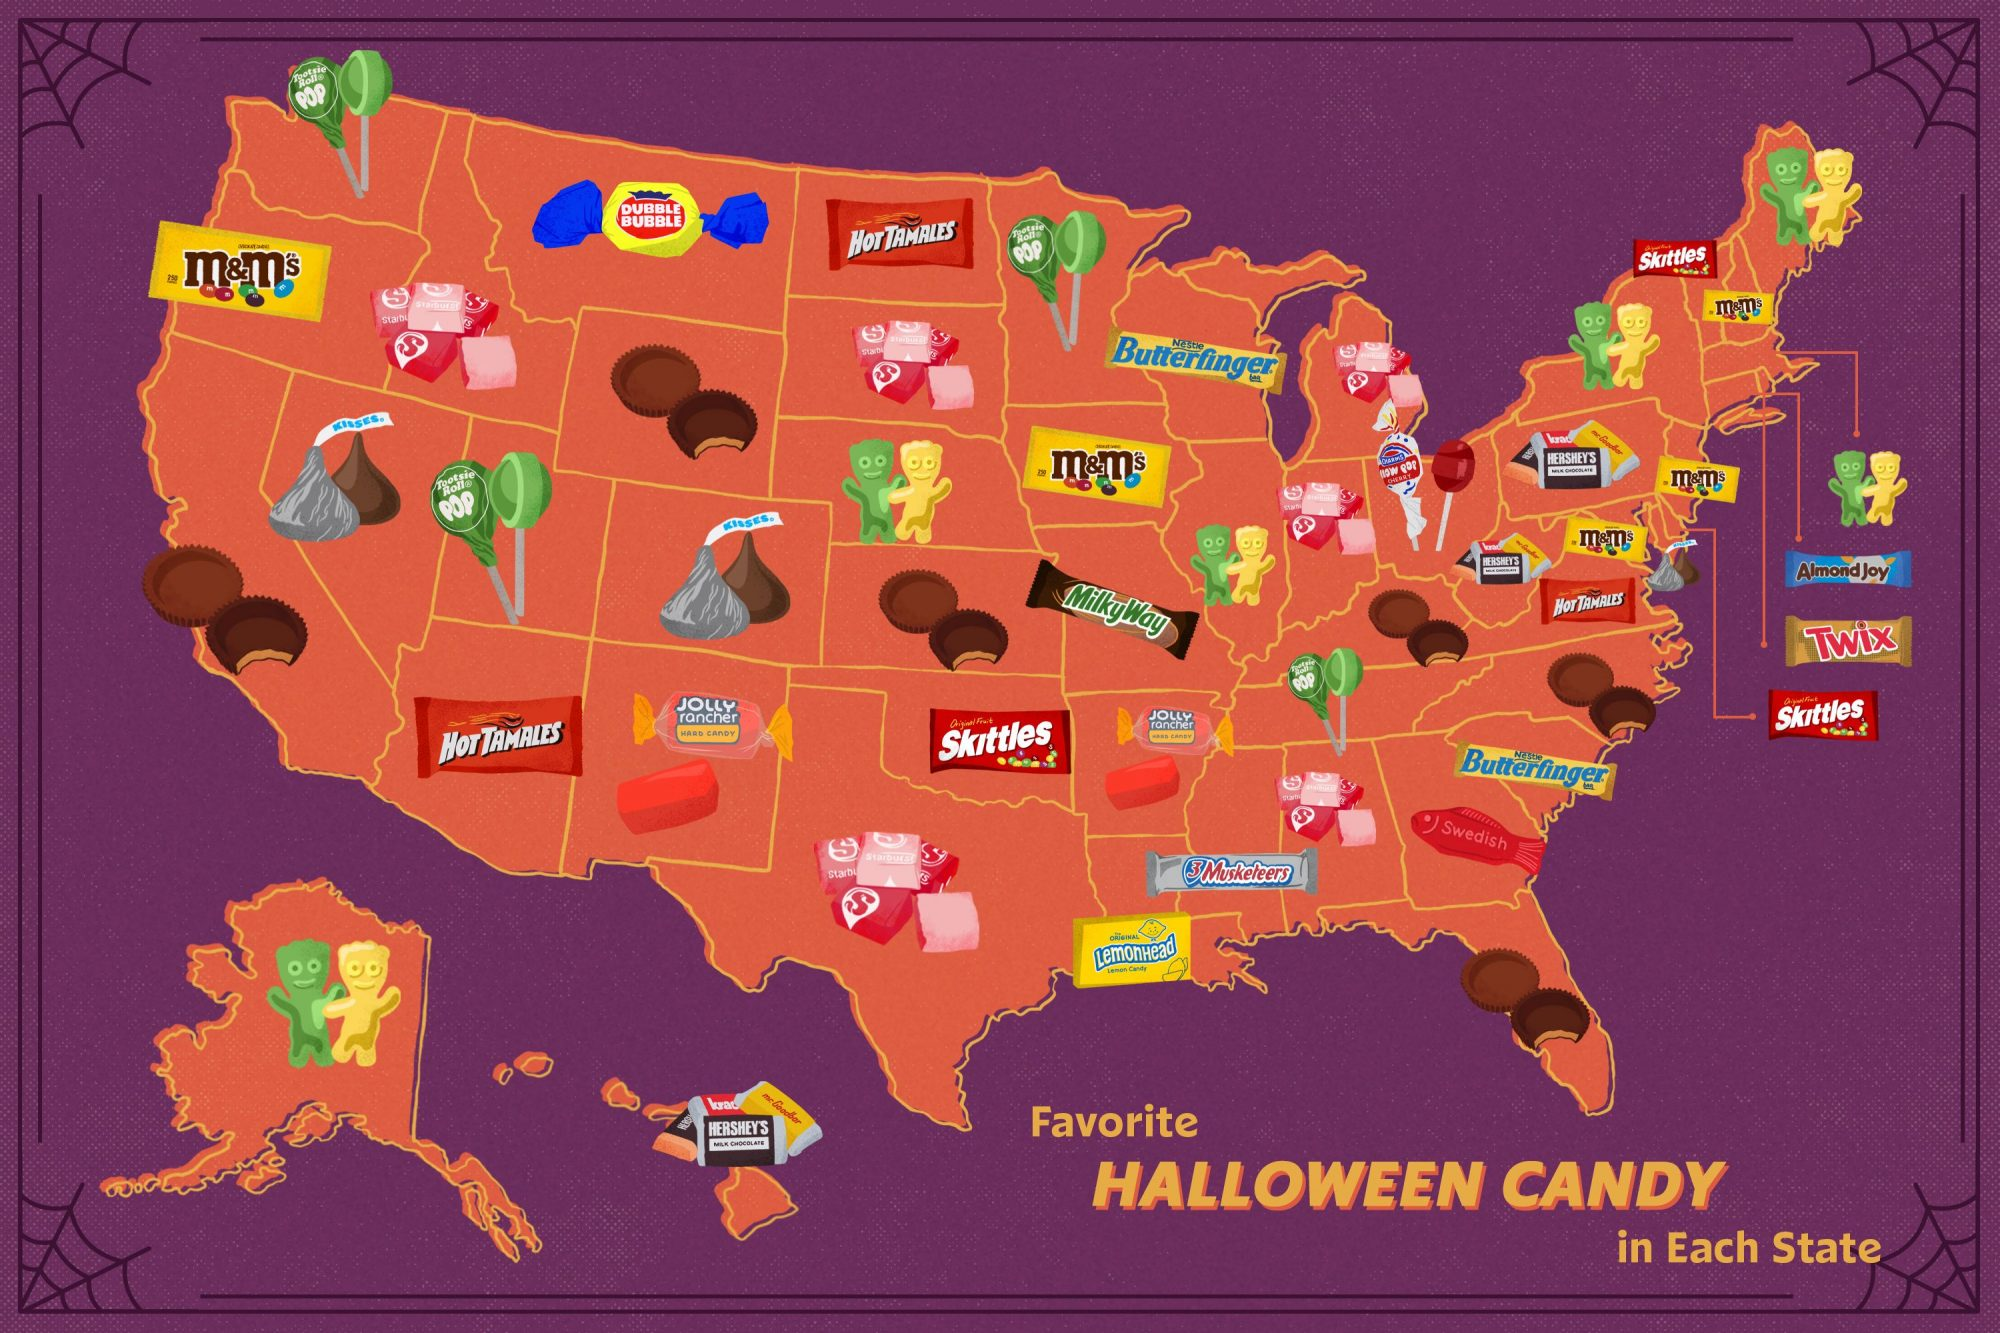 graphic image of a map of the United States showing which Halloween candies are the most popular in each state